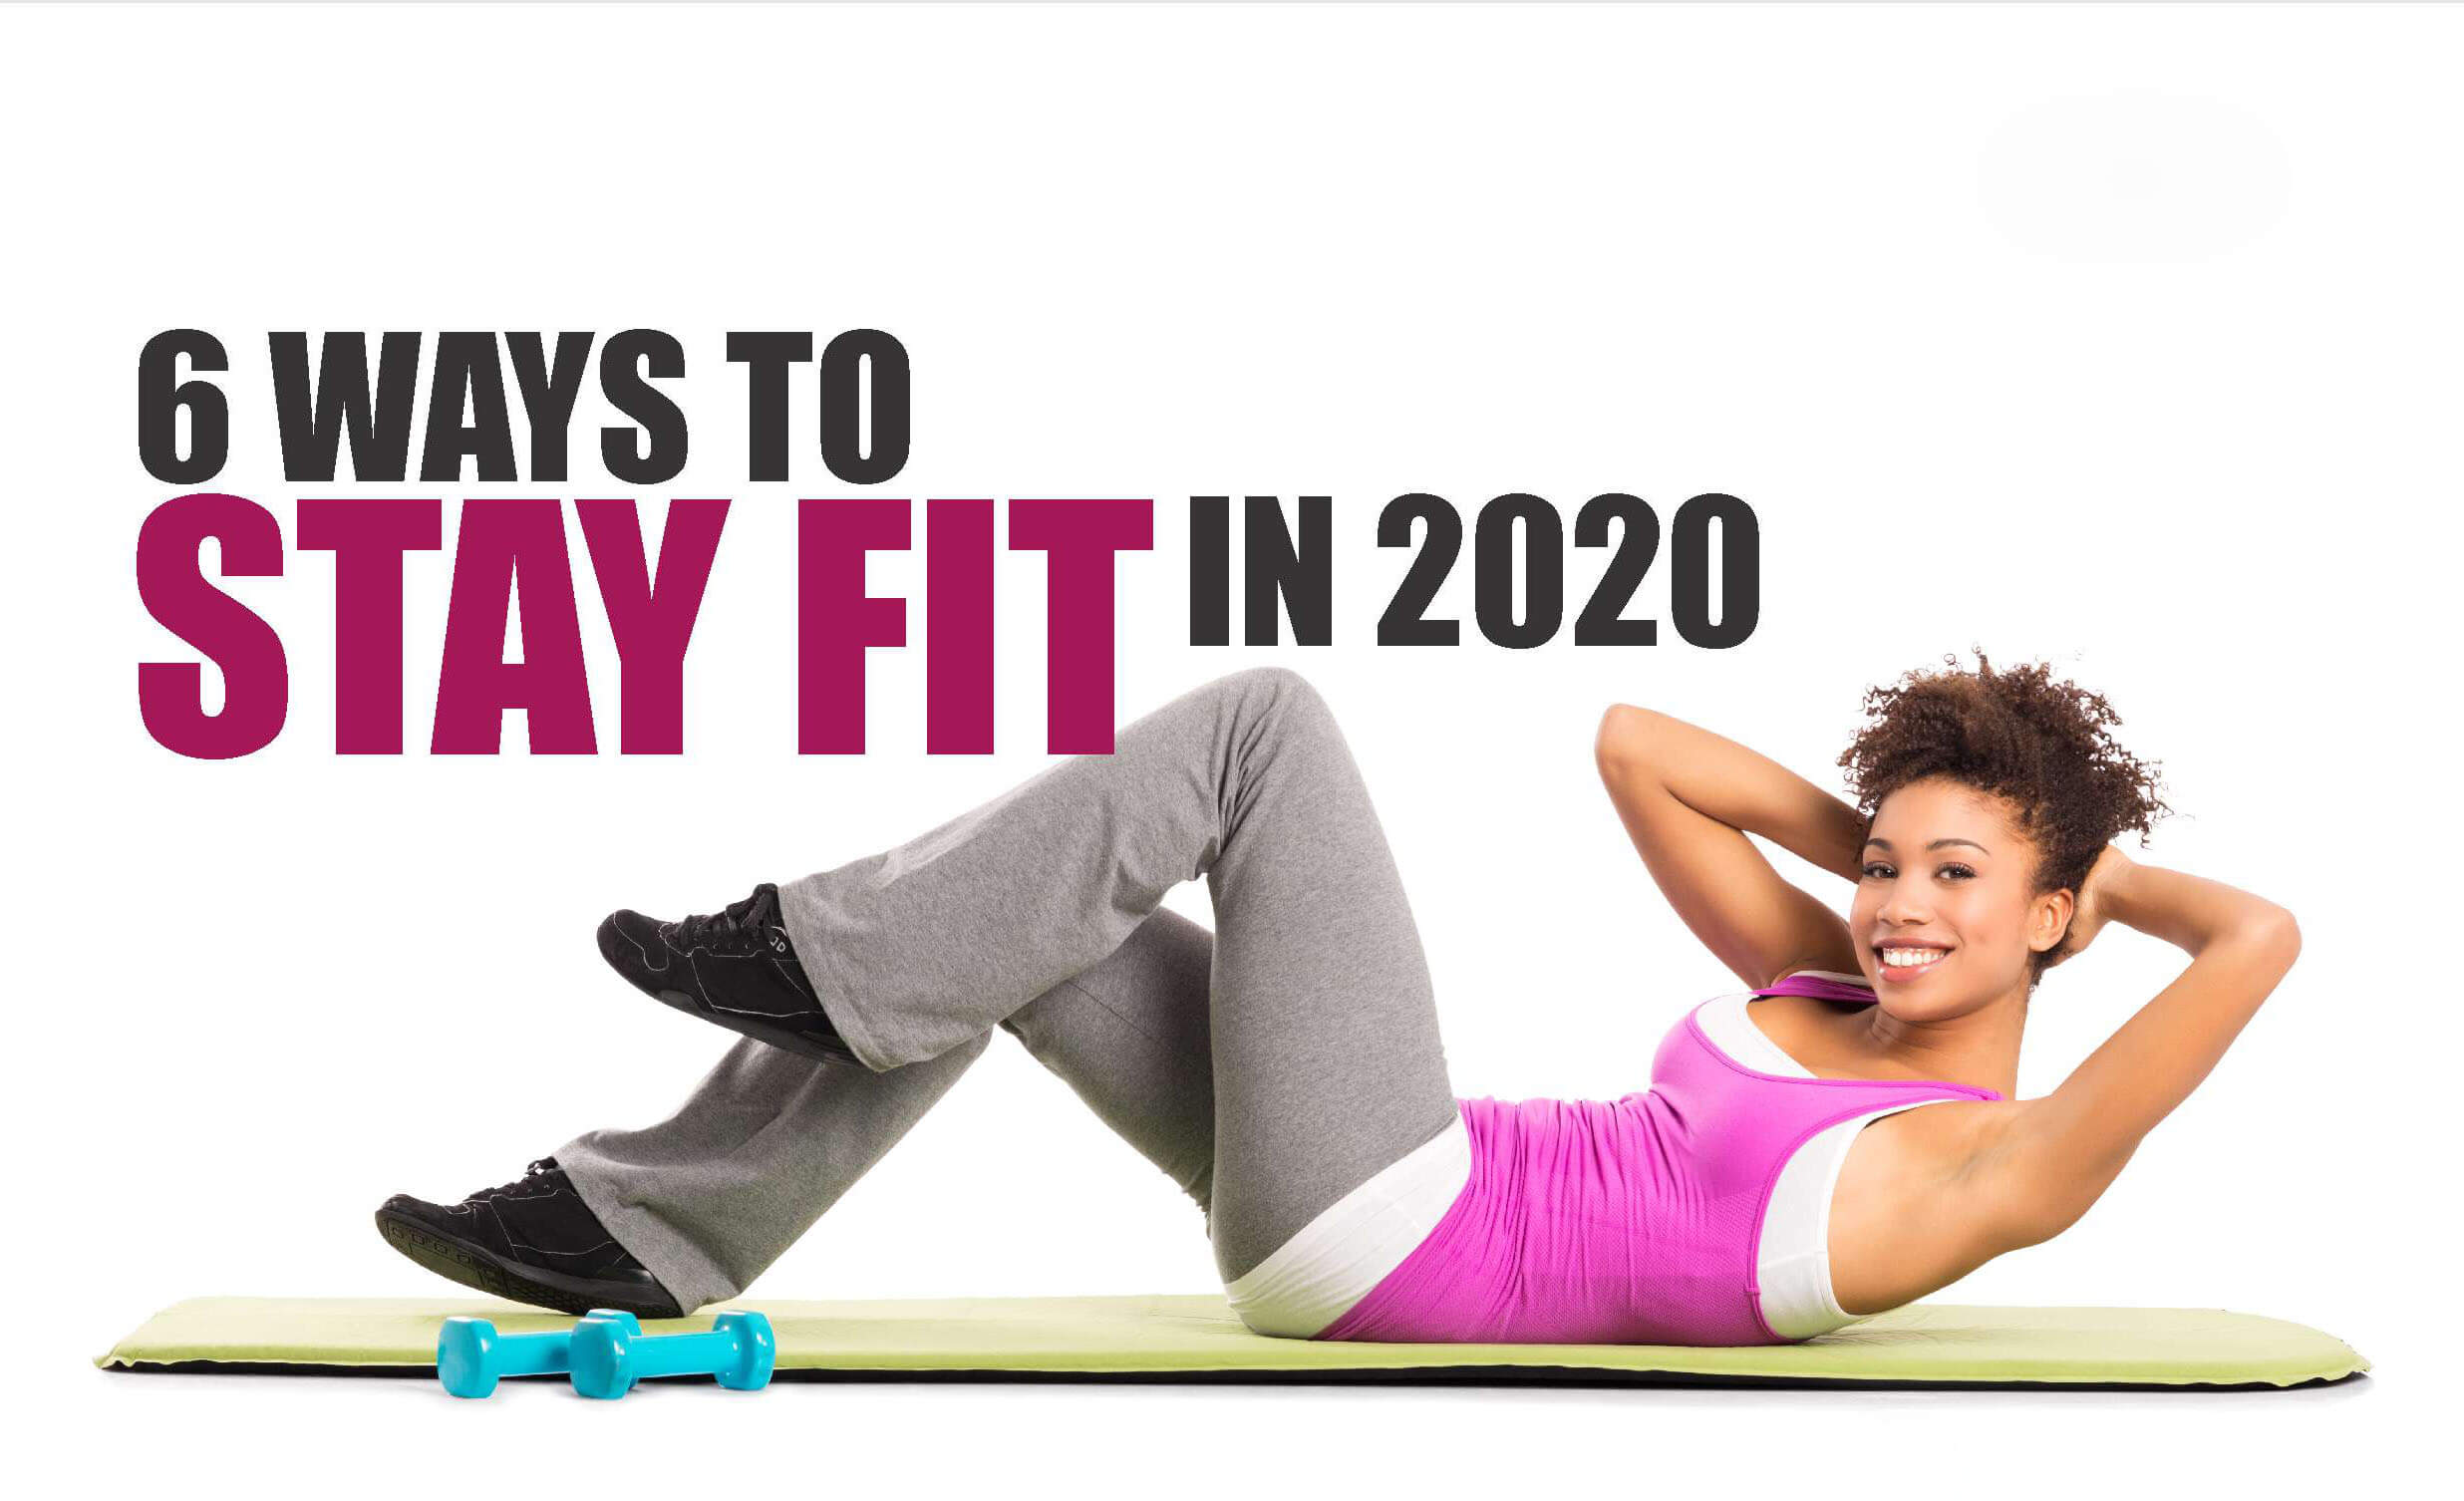 6 ways to stay fit in 2020